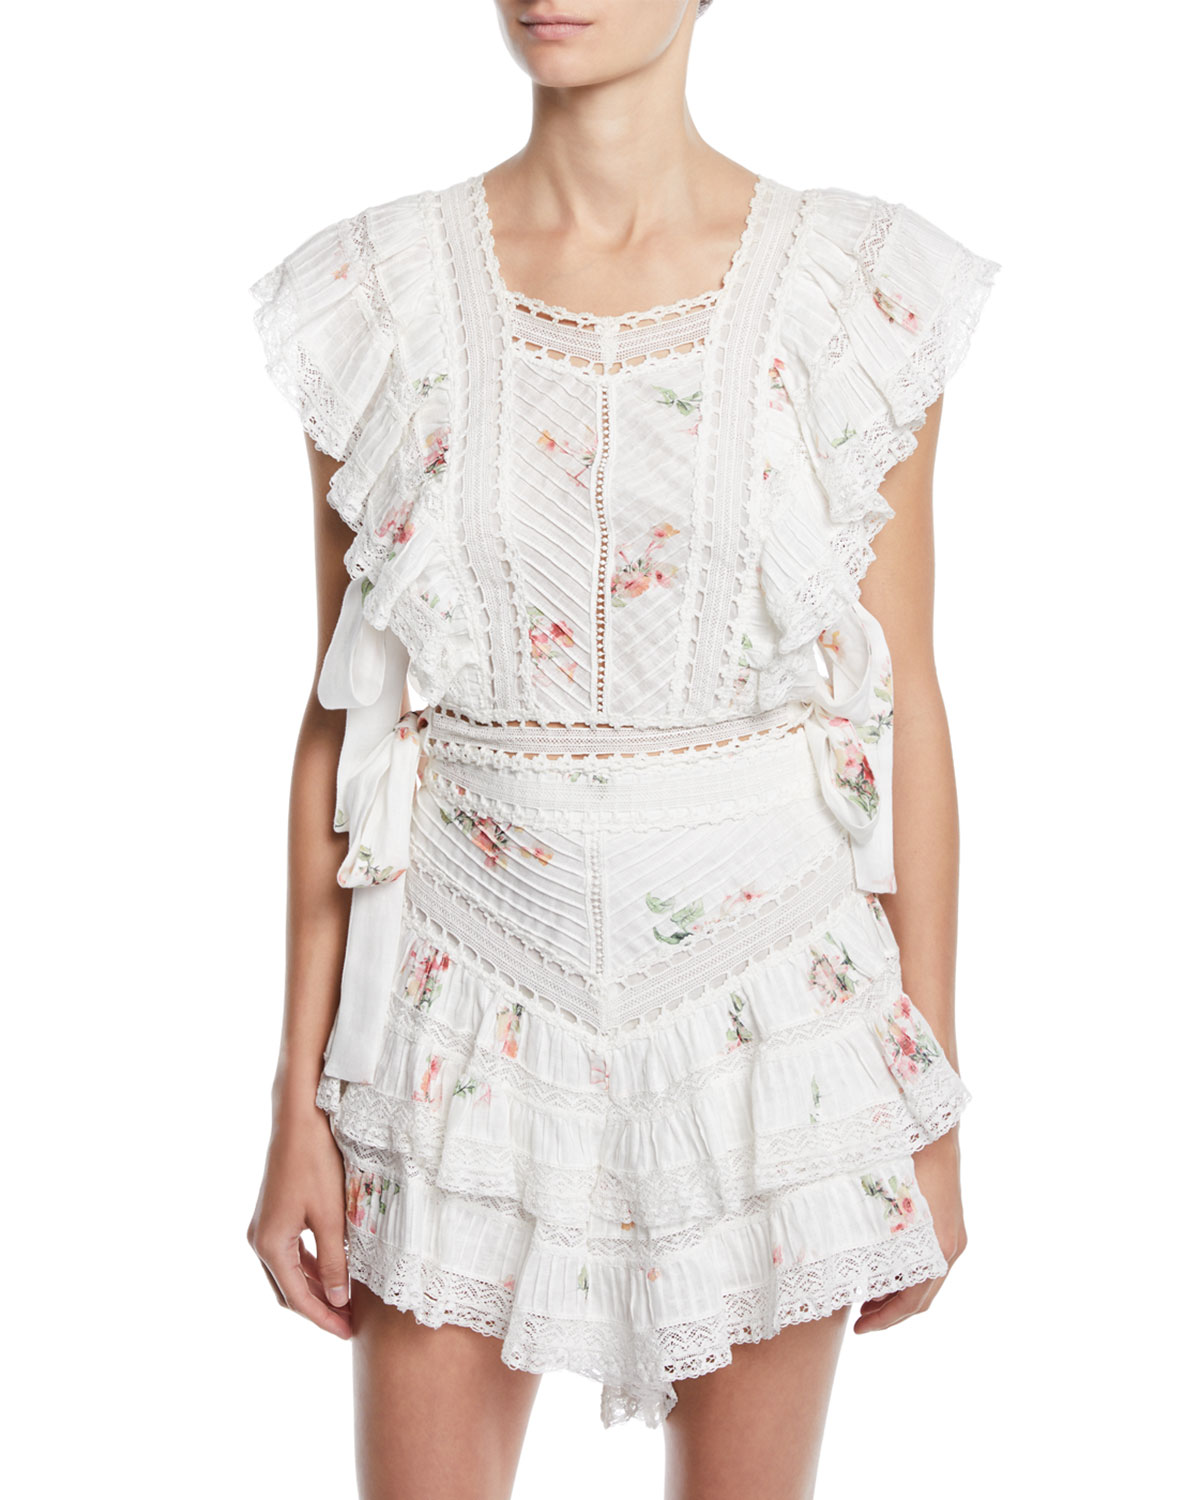 749d7bc166 Zimmermann Heathers Pintuck Floral Cropped Ruffle Blouse